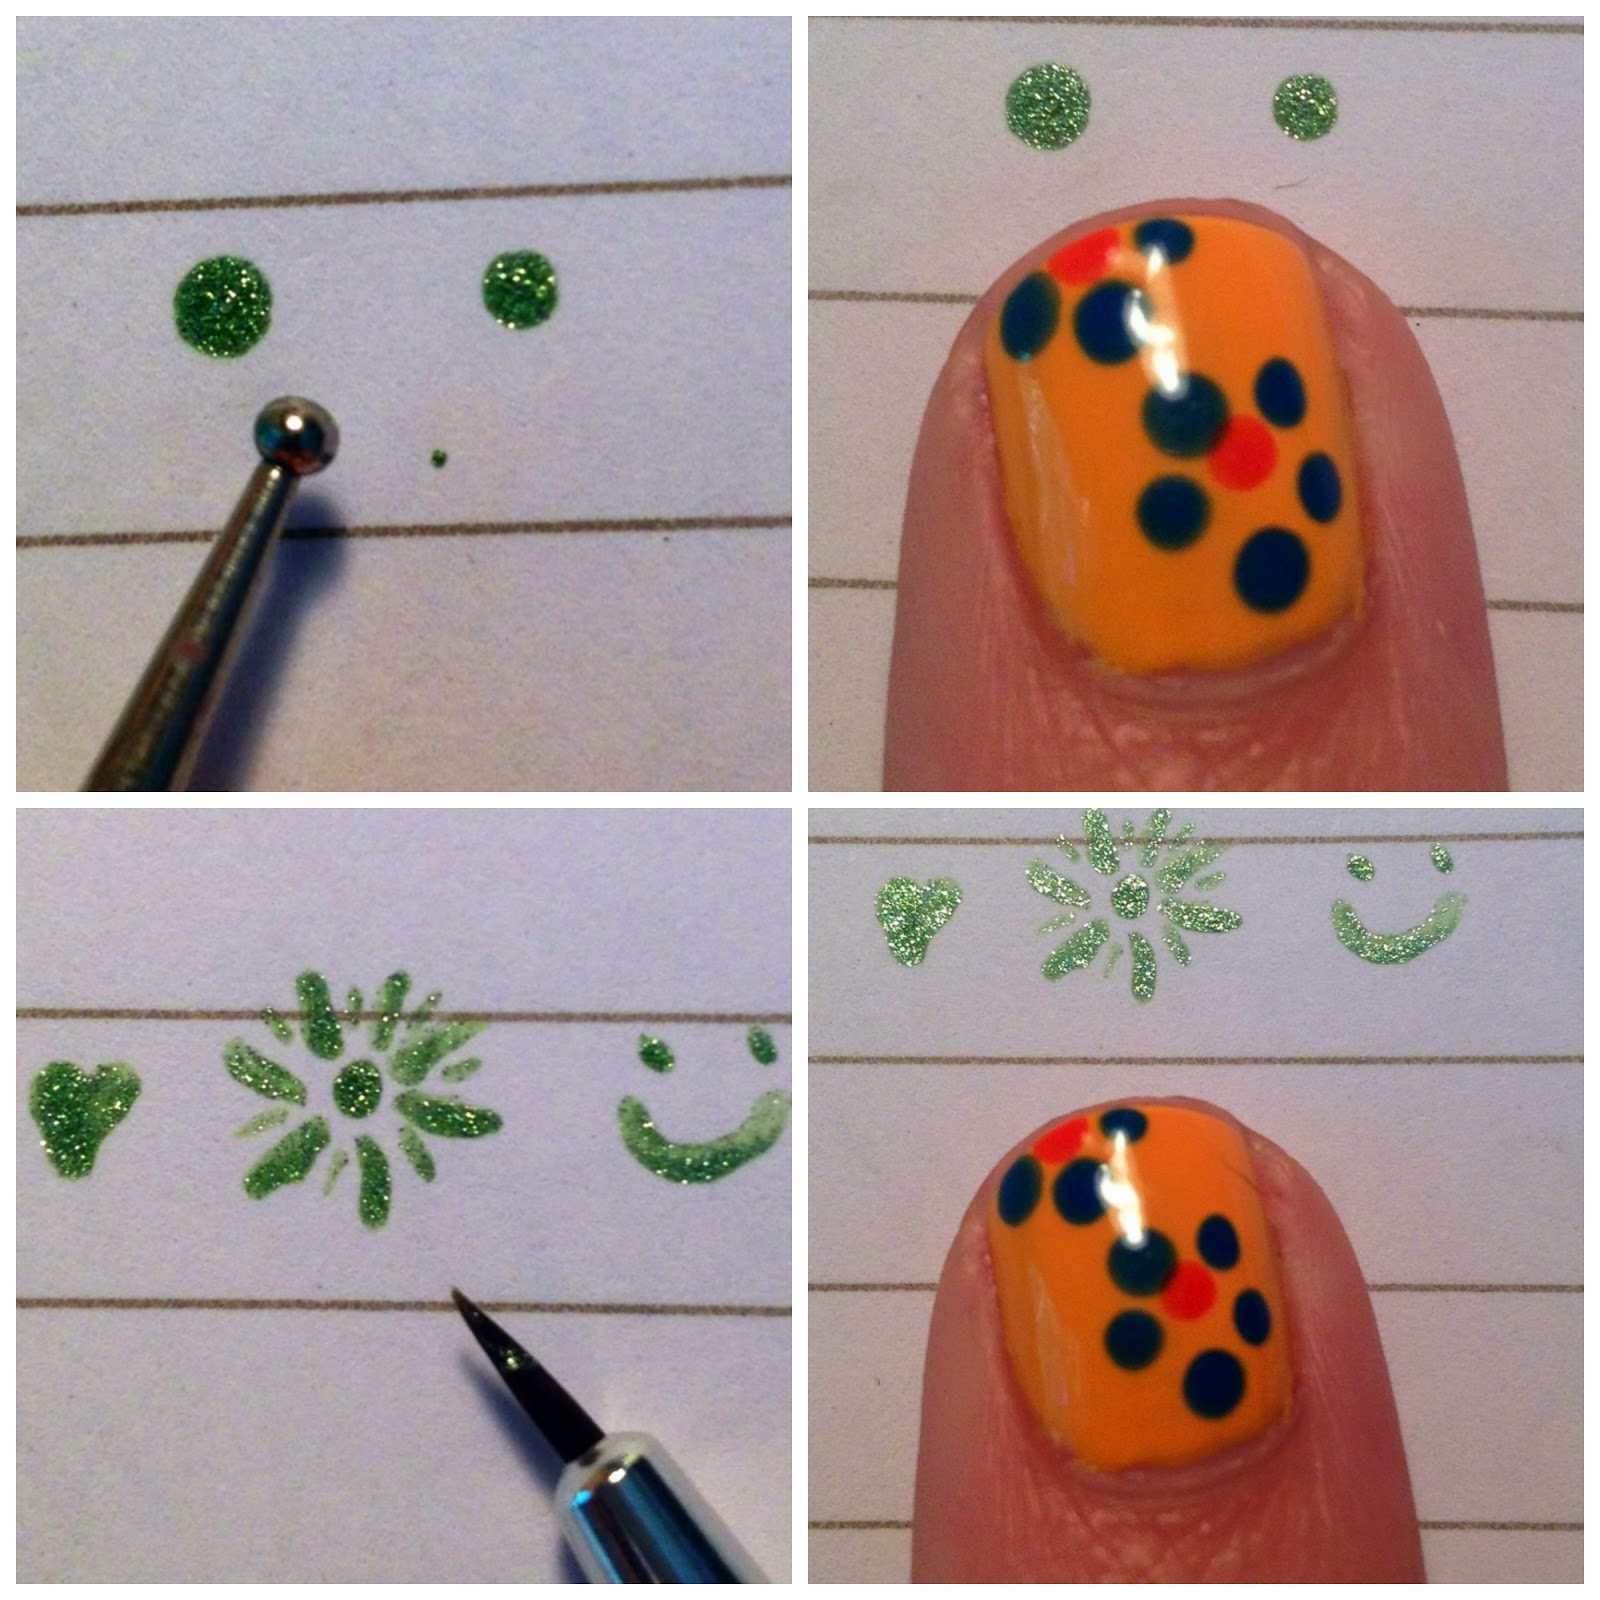 Dotting Tools 101 The Definitive Guide To Getting Dotty How To ...